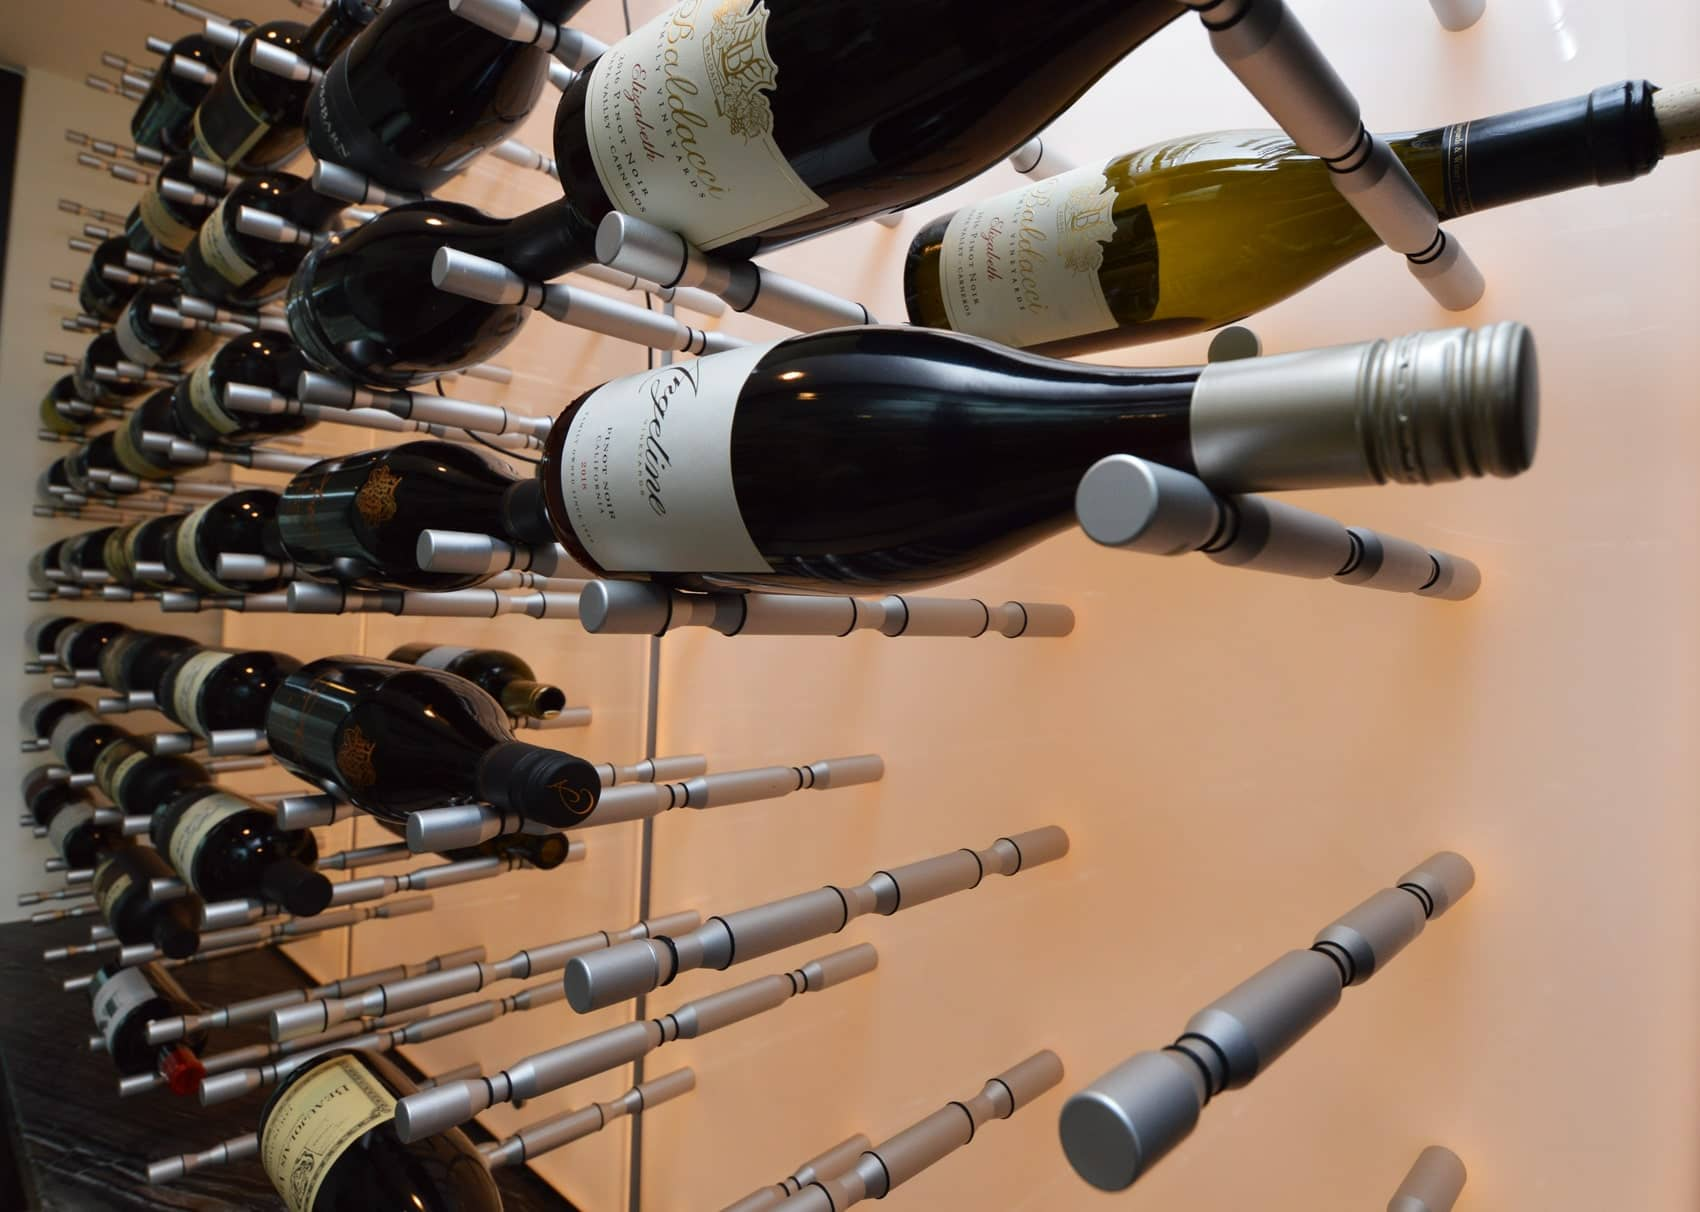 Rubber rings on the wine pegs prevents movement of wine bottles when placed on top of it.